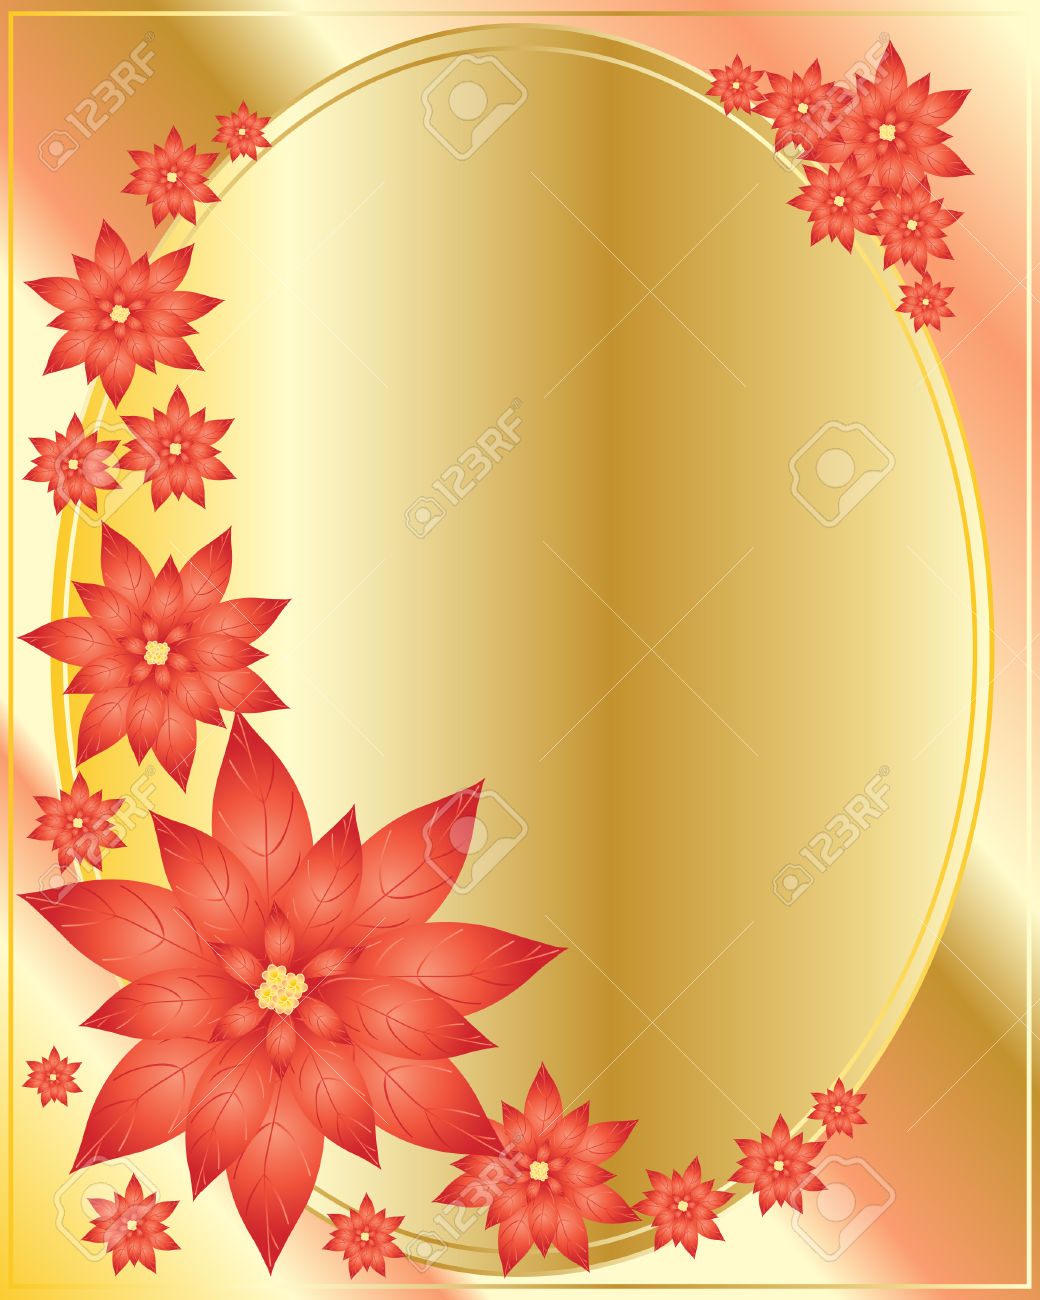 An Illustration Of Poinsettias Arranged Around A Golden Oval.